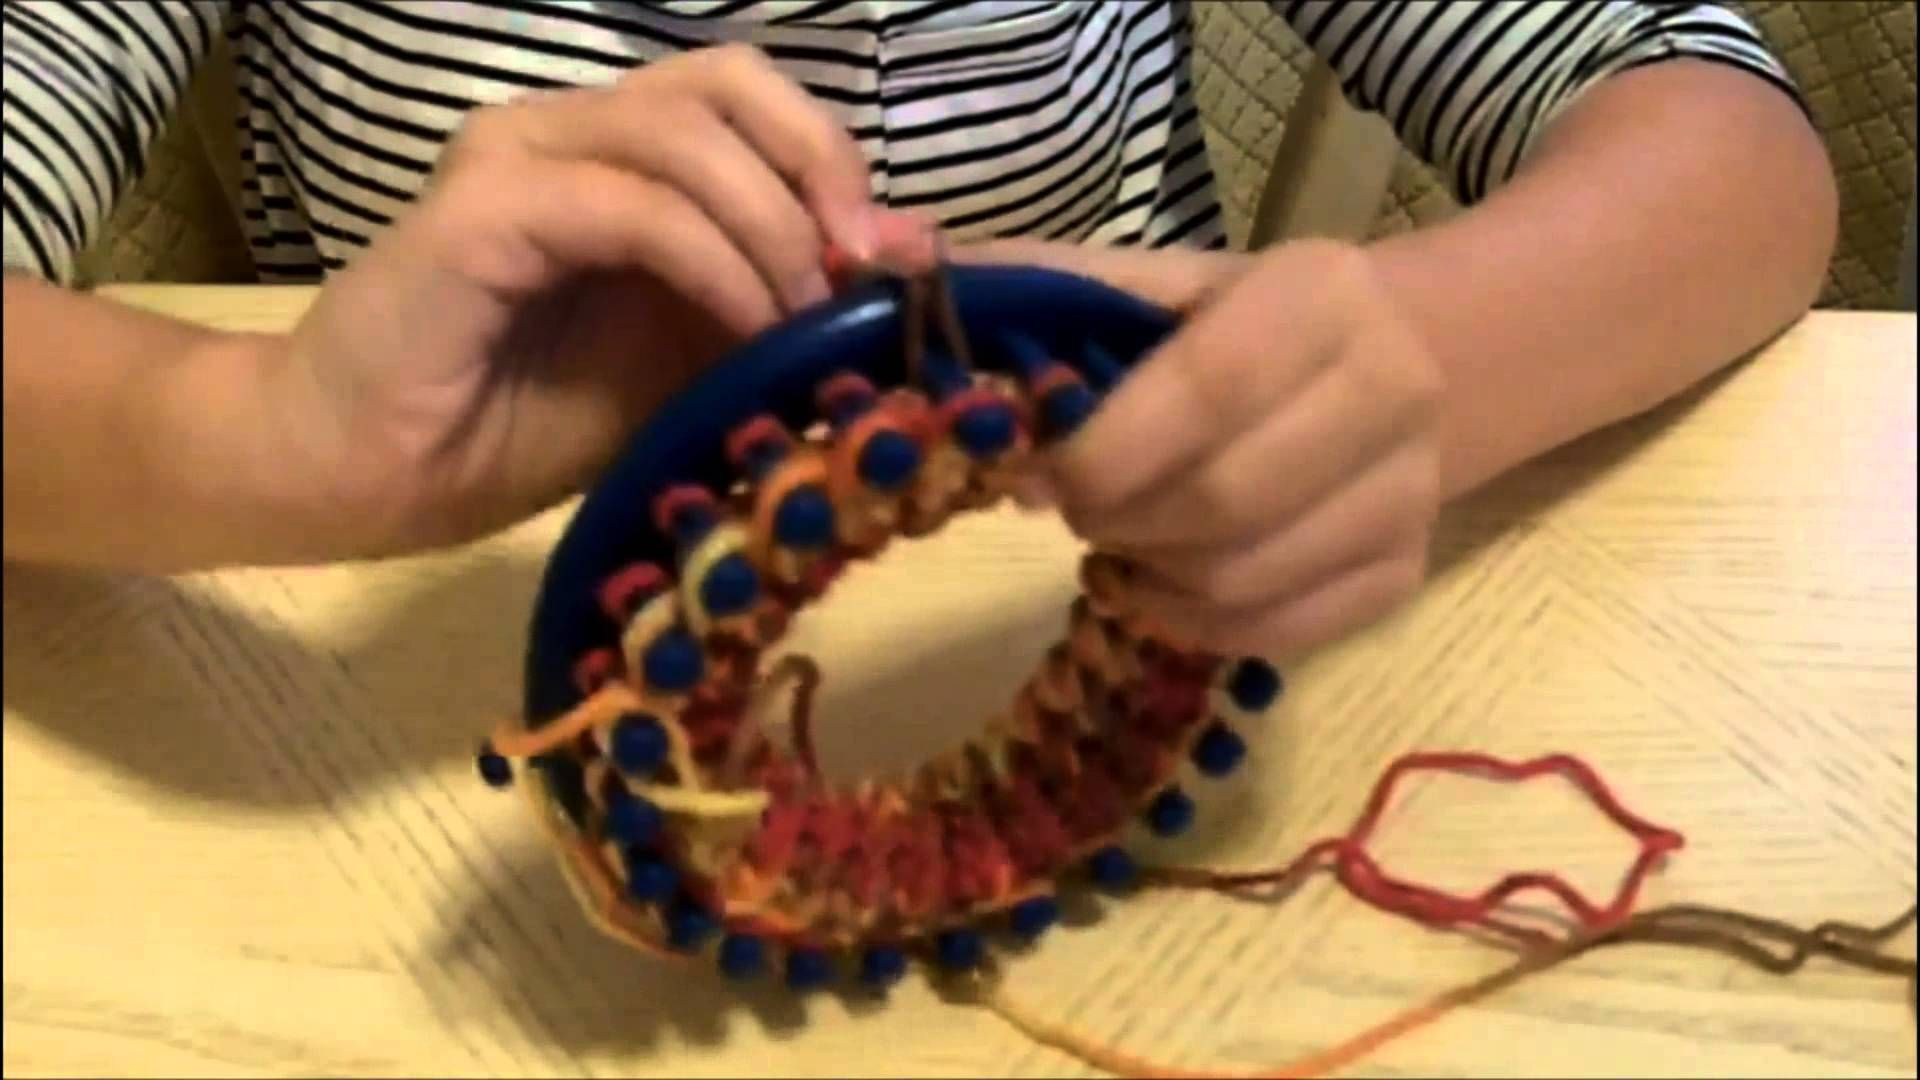 How to Loom  10 Year Old Teaches Loom Knitting for Kids and Beginners  How to Loom  10 Year Old Teaches Loom Knitting for Kids and Beginners Hi ladies this article will t...